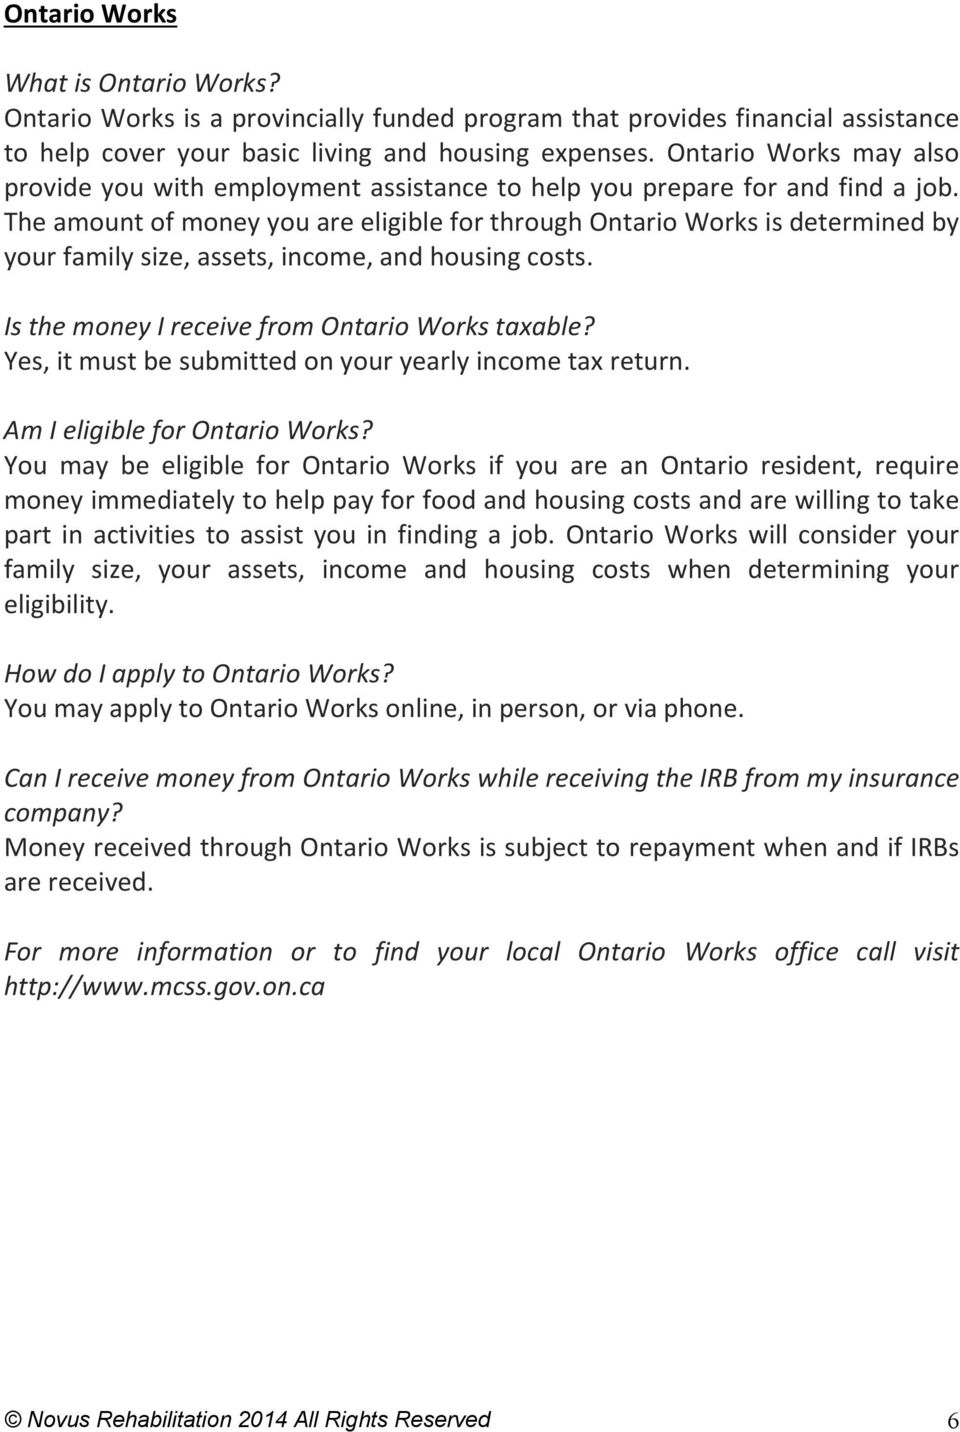 The amount of money you are eligible for through Ontario Works is determined by your family size, assets, income, and housing costs. Is the money I receive from Ontario Works taxable?